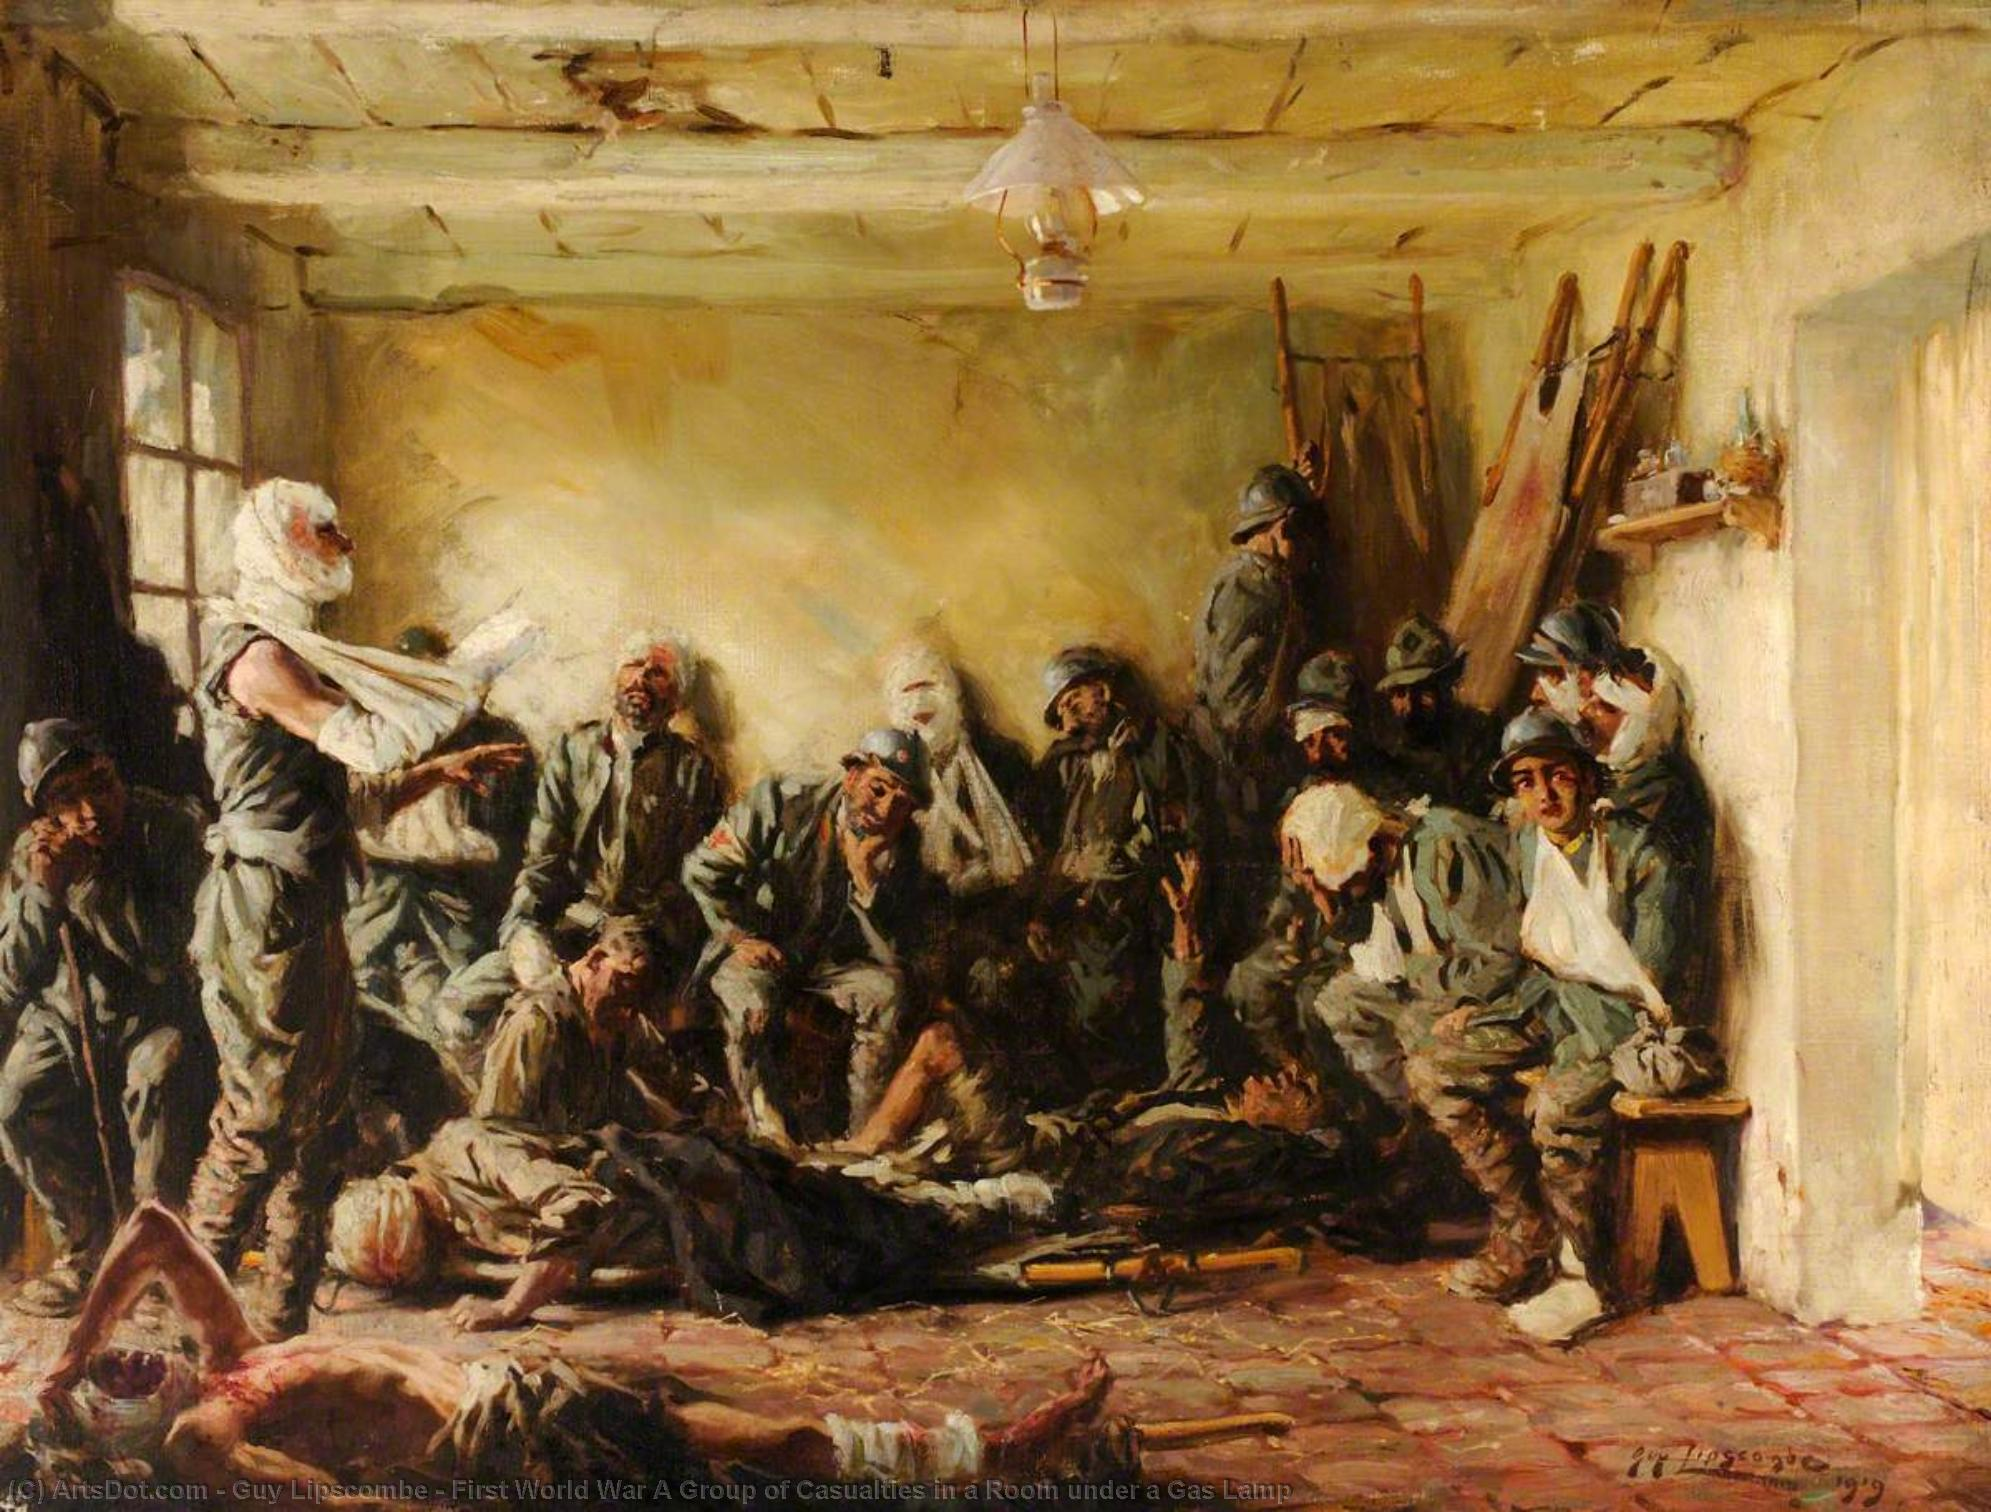 First World War A Group of Casualties in a Room under a Gas Lamp, 1919 by Guy Lipscombe | Art Reproductions Guy Lipscombe | ArtsDot.com